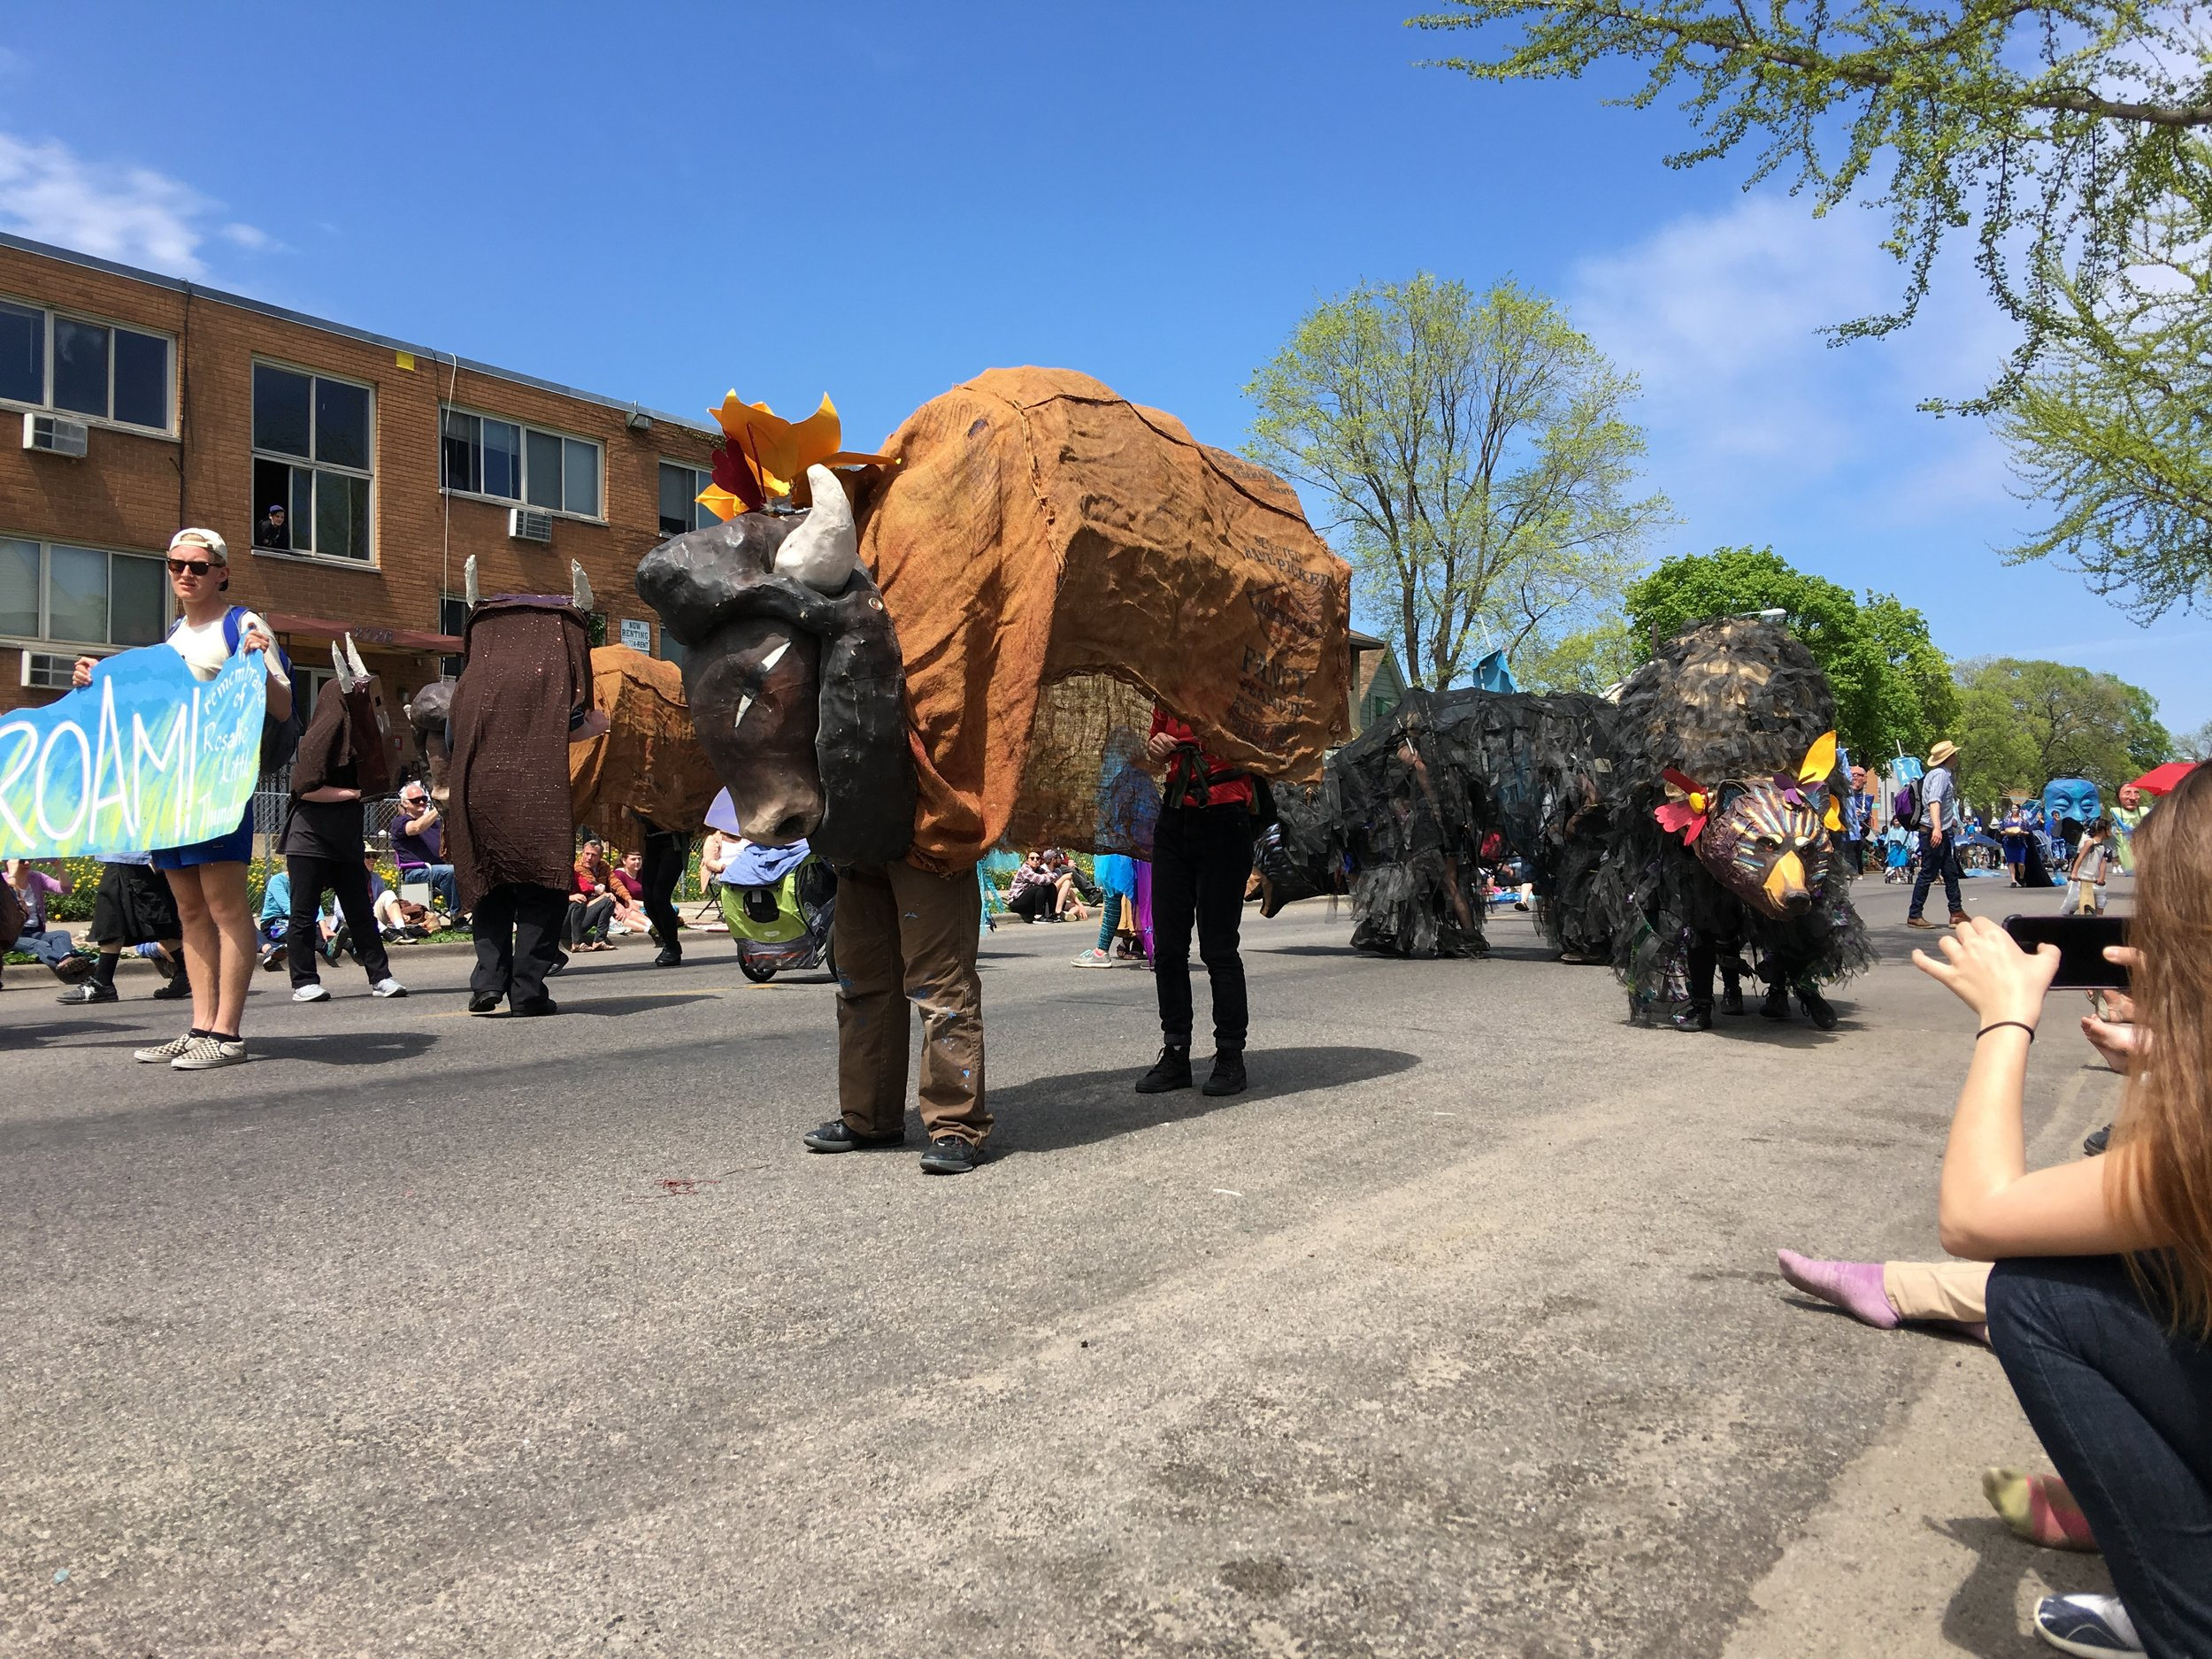 One of the many unique puppet creations in the parade